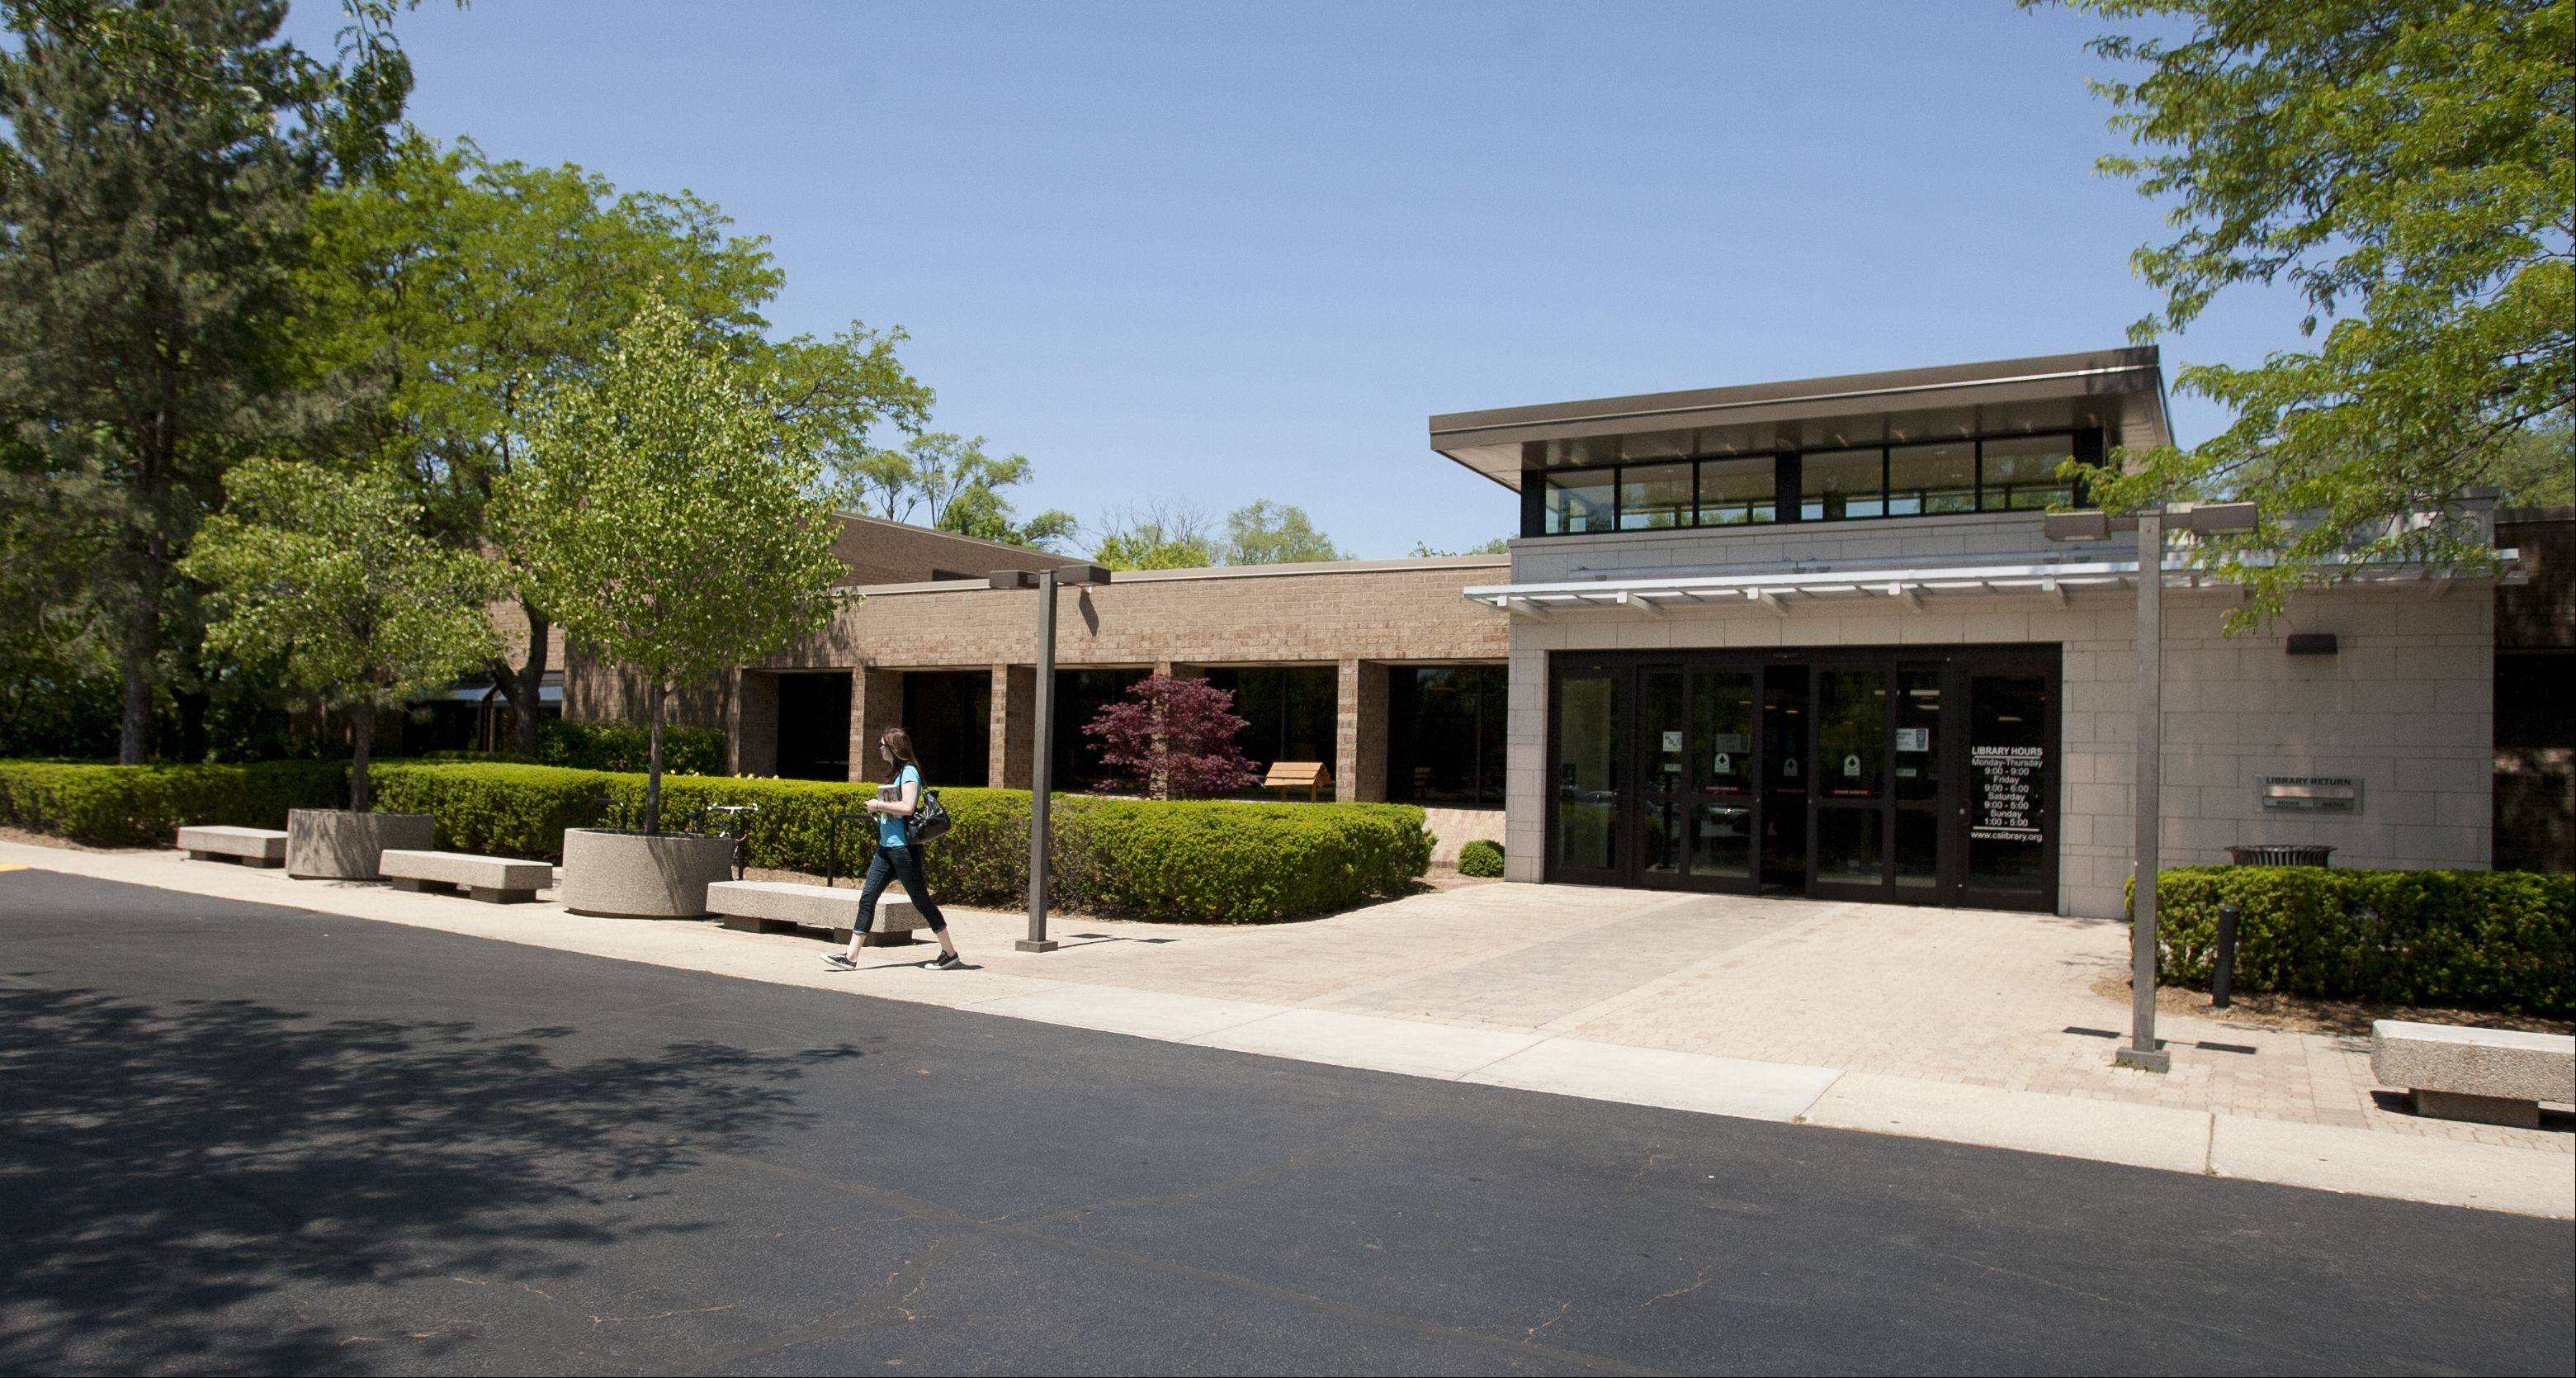 The Carol Stream Public Library will host a variety of family activities Saturday in celebration of its 50th anniversary.